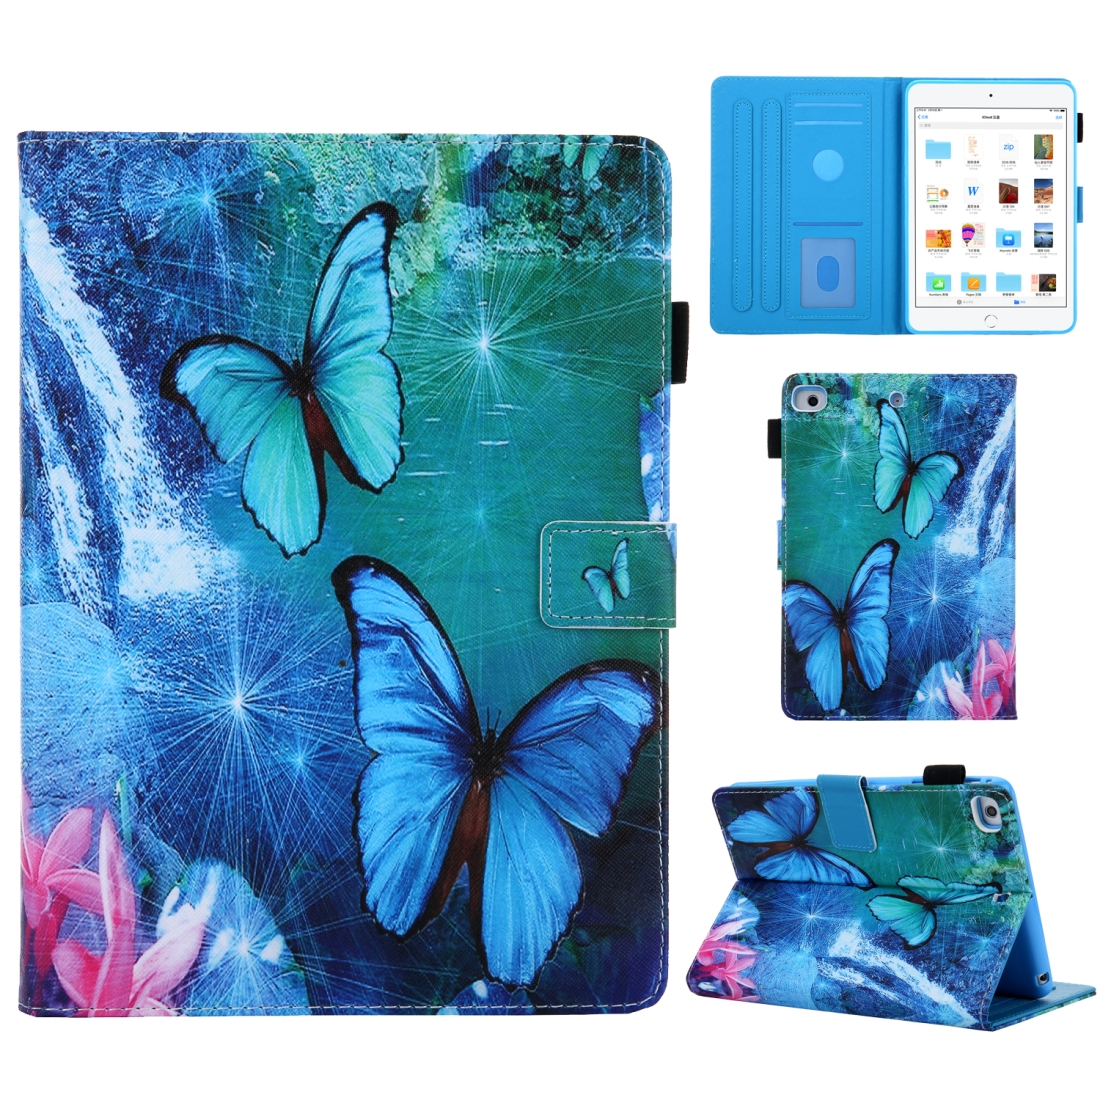 3D Leather Case with Sleeve  iPad 10.5 Case (Waterfall Butterfly)